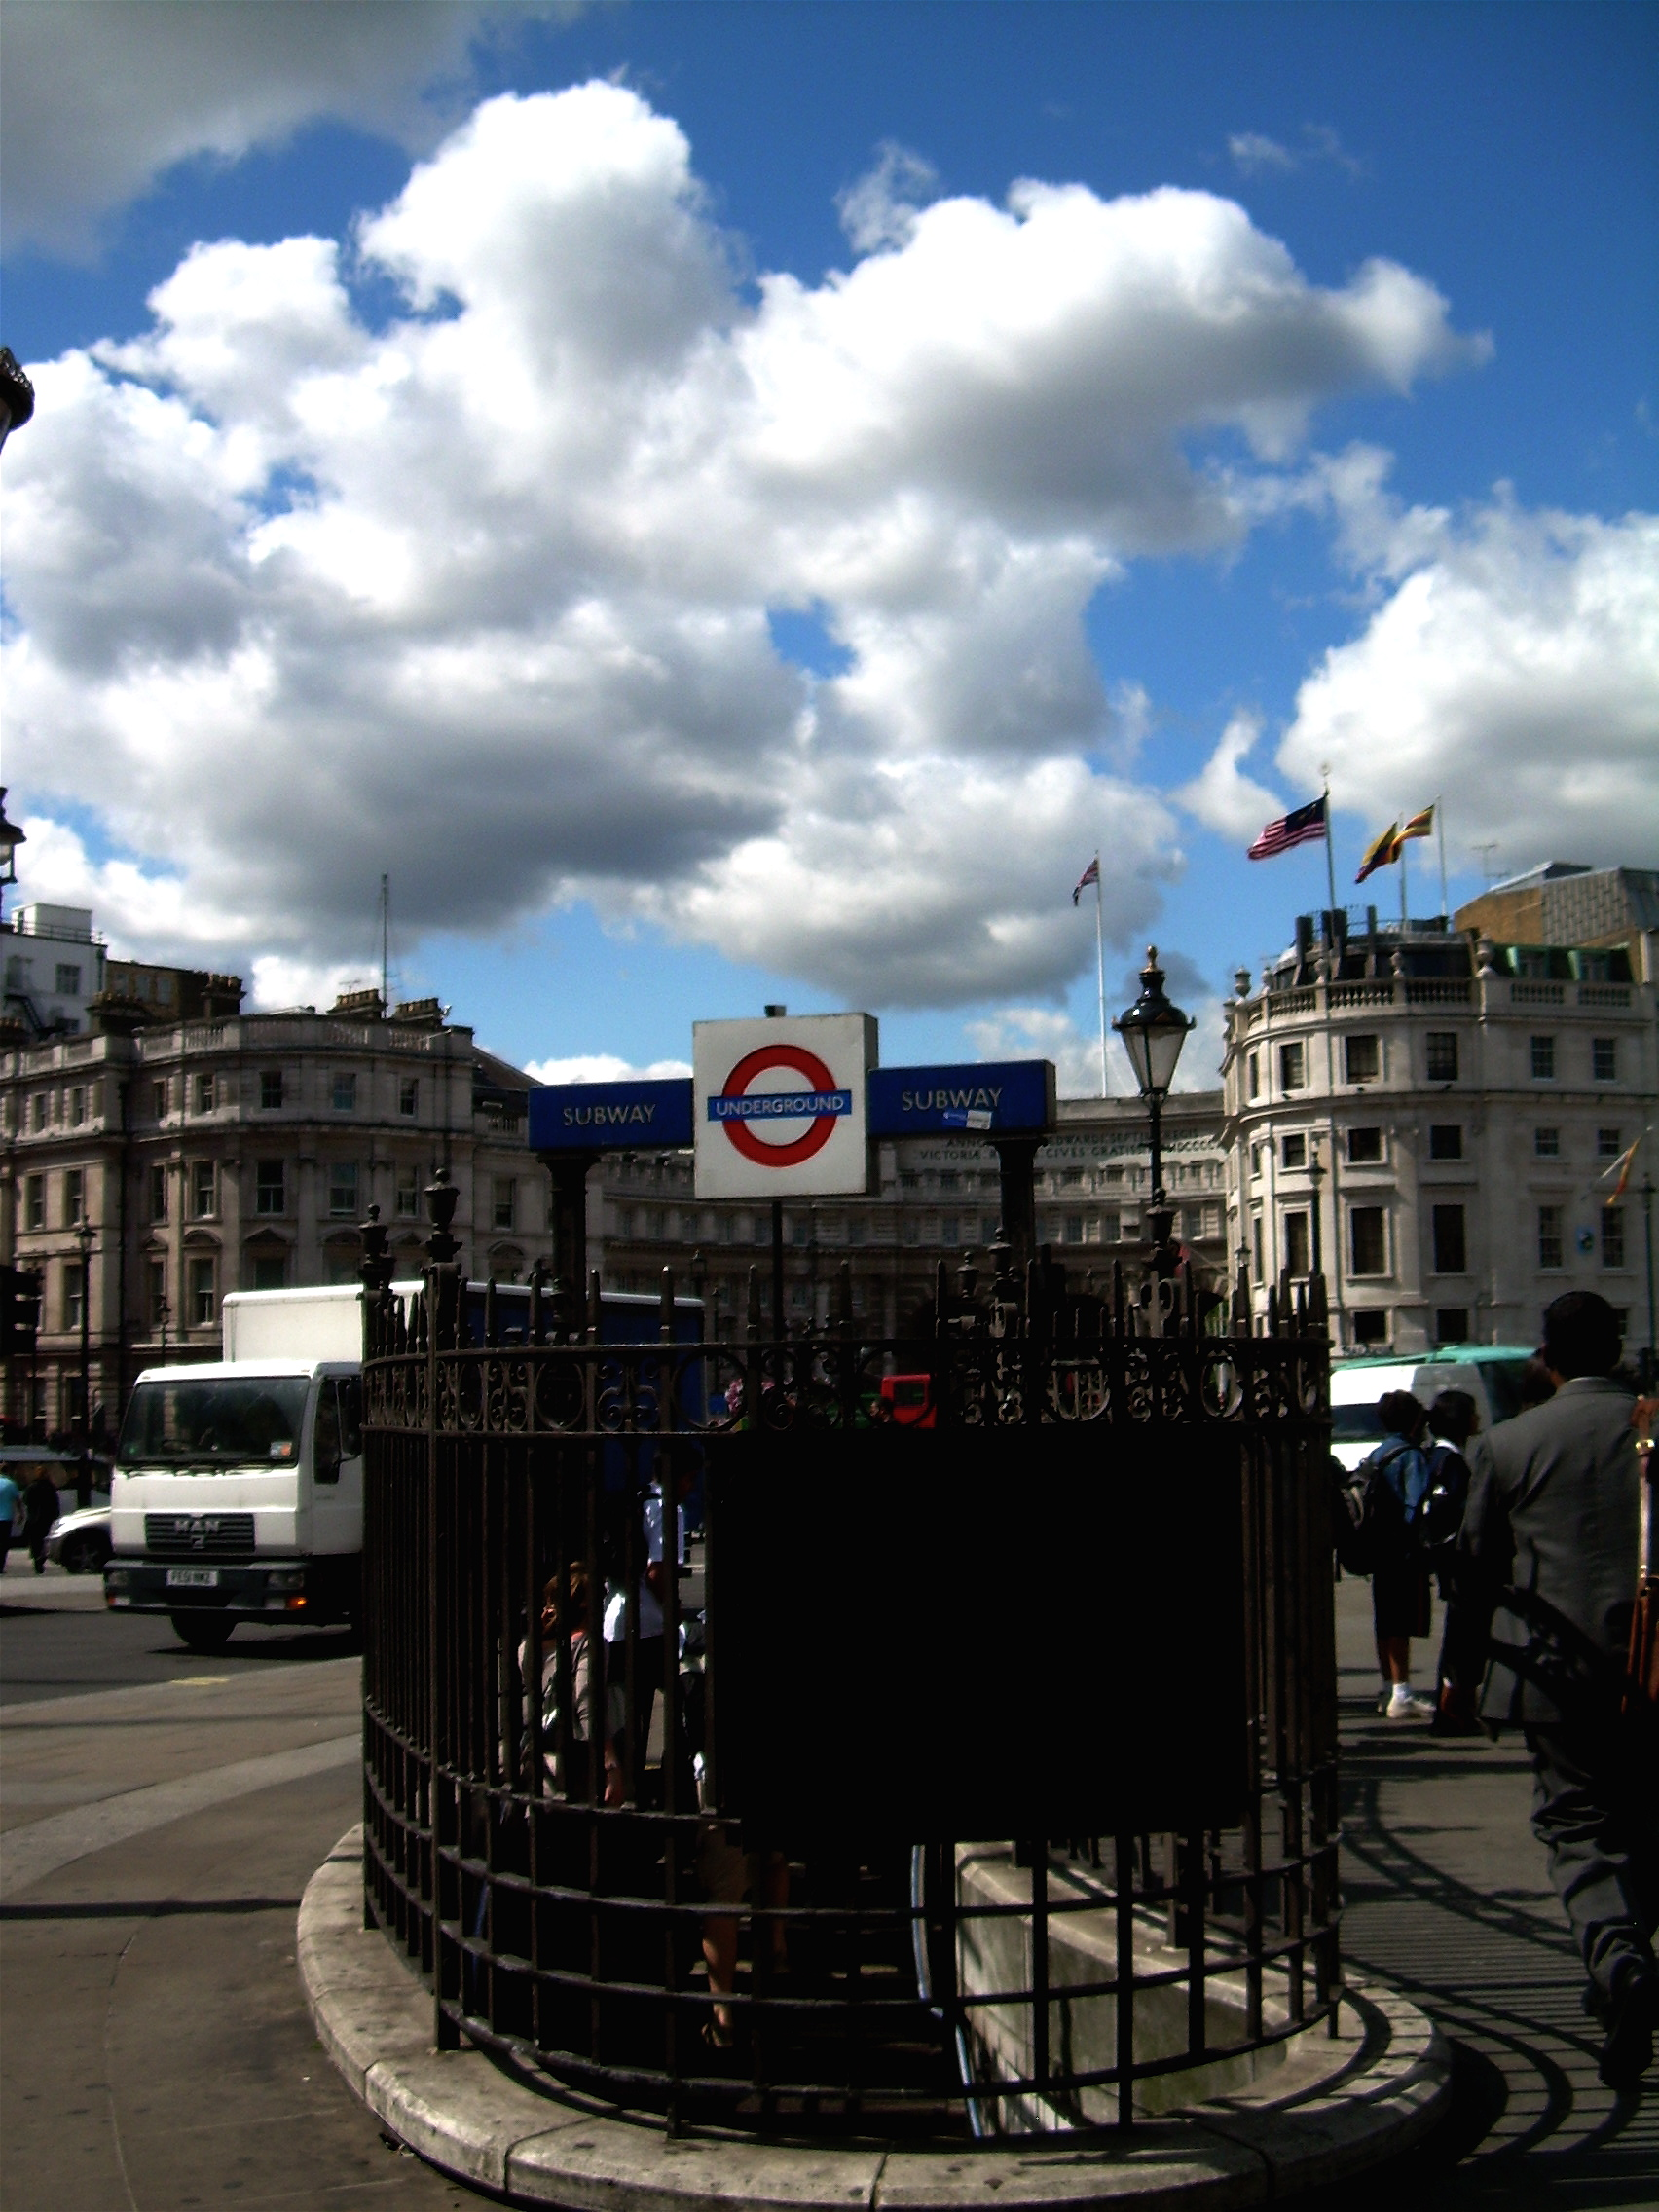 Underground Station at Piccadilly Square